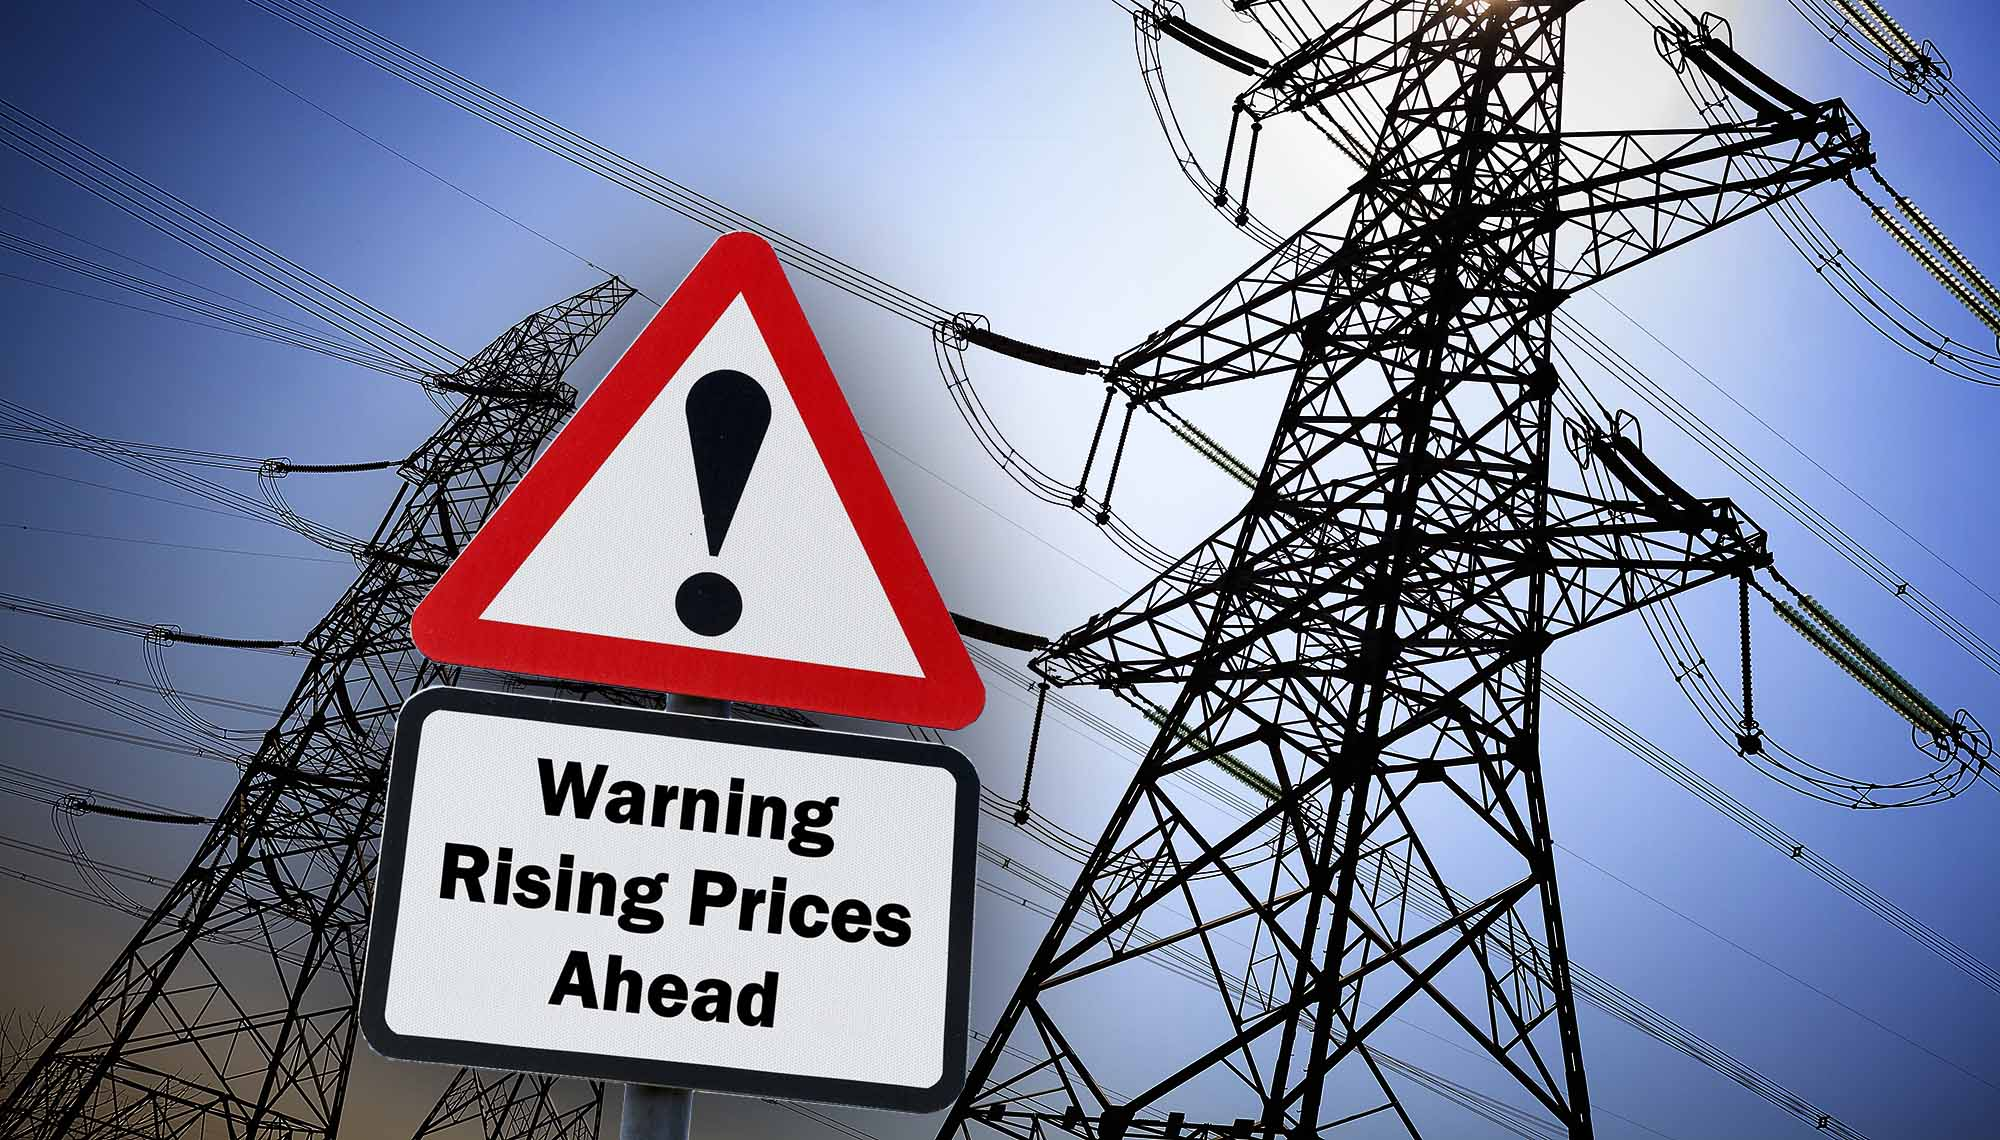 Eskom Annual Price Increase 2019/20